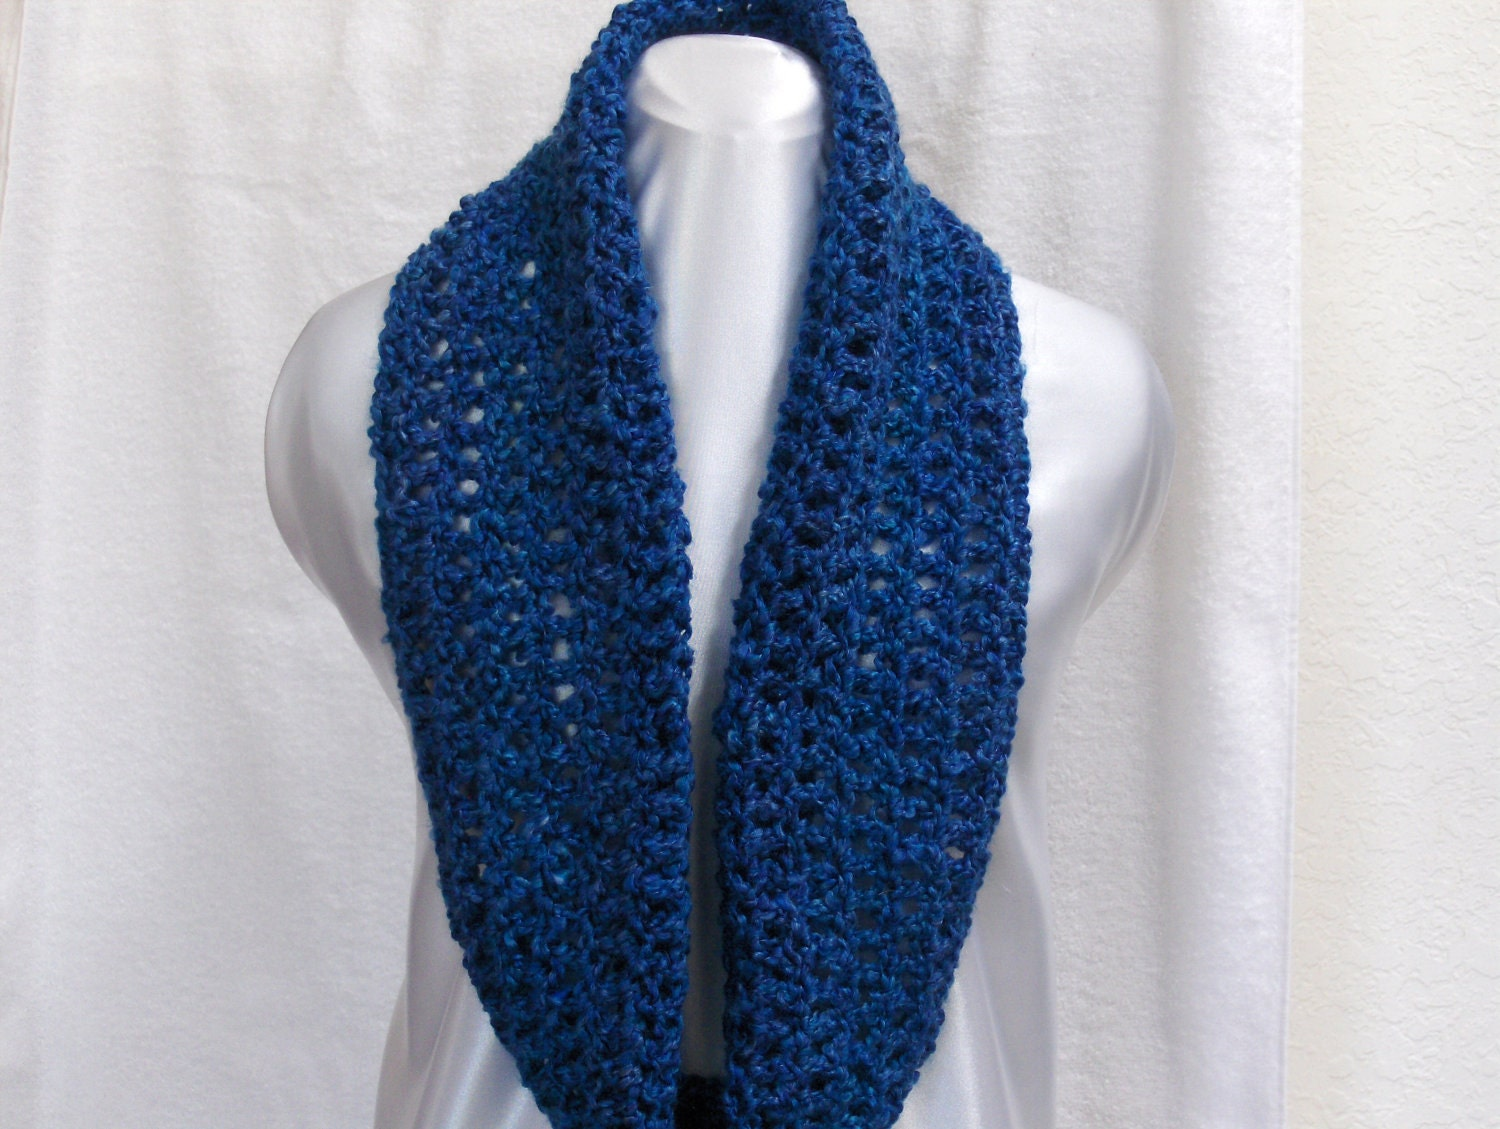 Crochet Cowl Neck Warmer Infinity Scarf Blue by ScarfShack on Etsy Cowl Neck Scarves Crochet